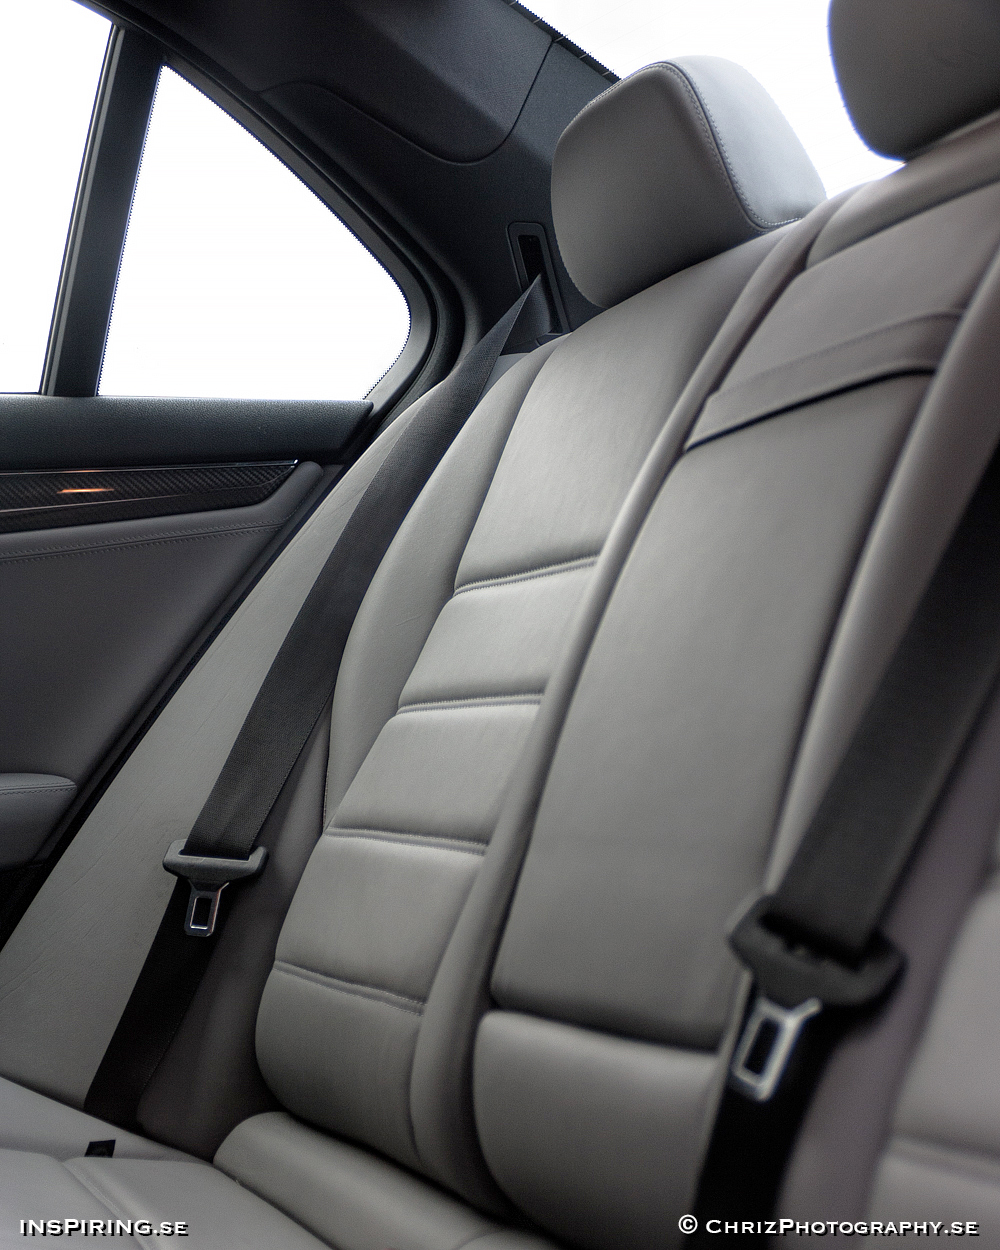 Inspiring.se_OUTTHERE_copyright_ChrizPhotography.se_634_Mercedes_C63_interior.jpg